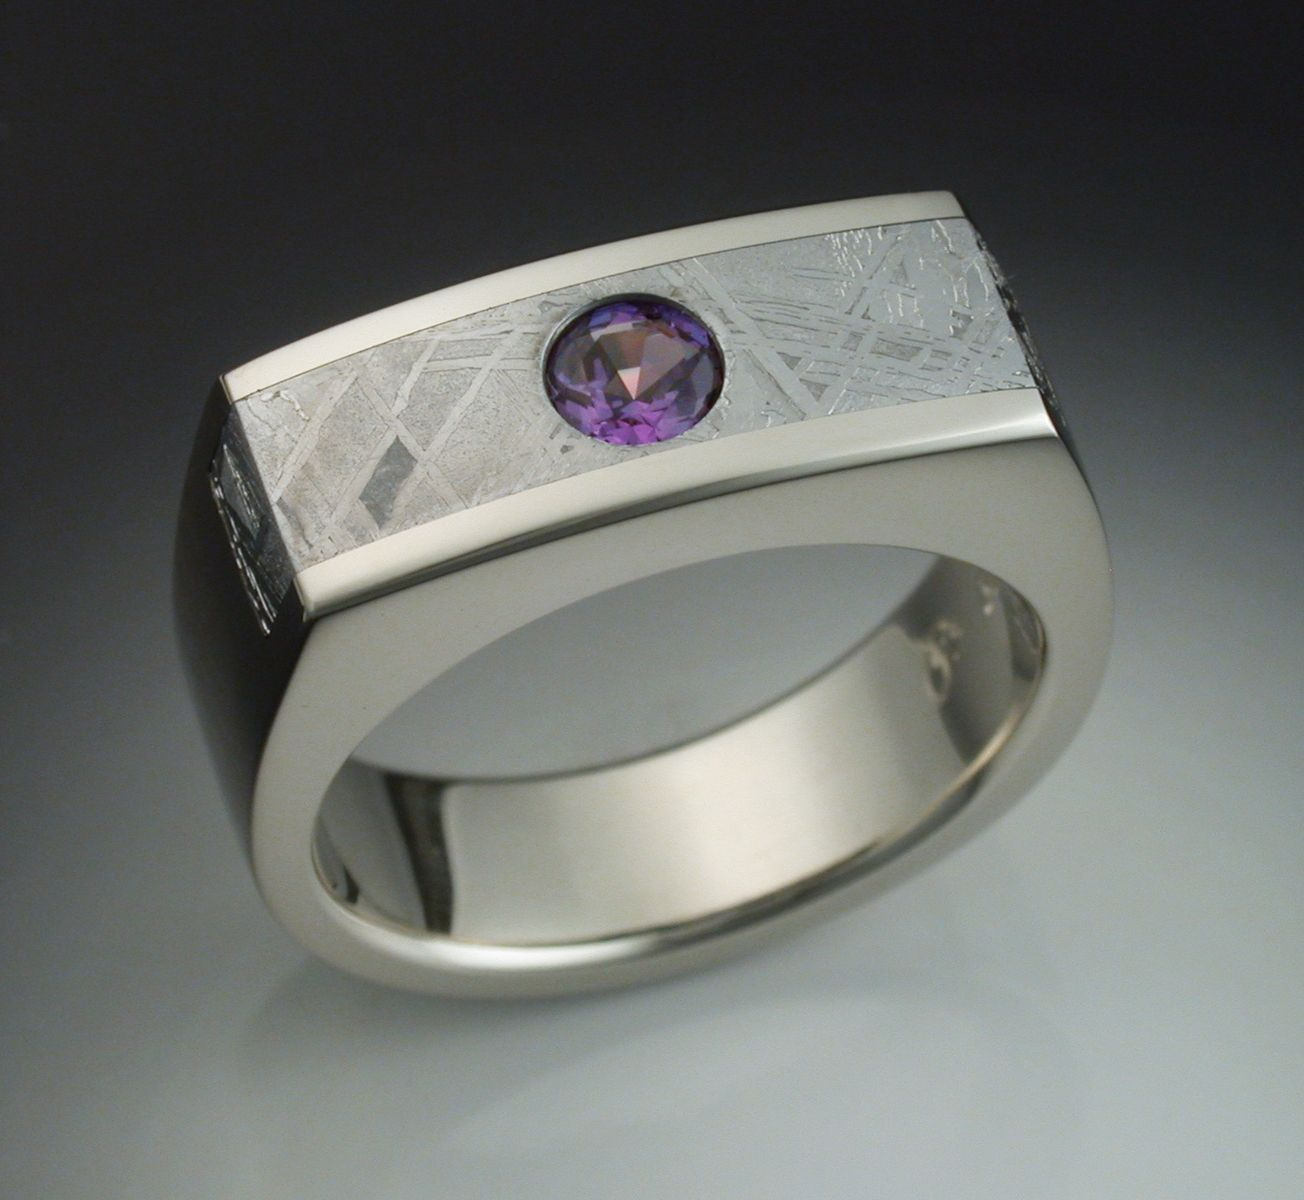 7d3c8accd8e0b Mans Ring With Alexandrite And Meteorite